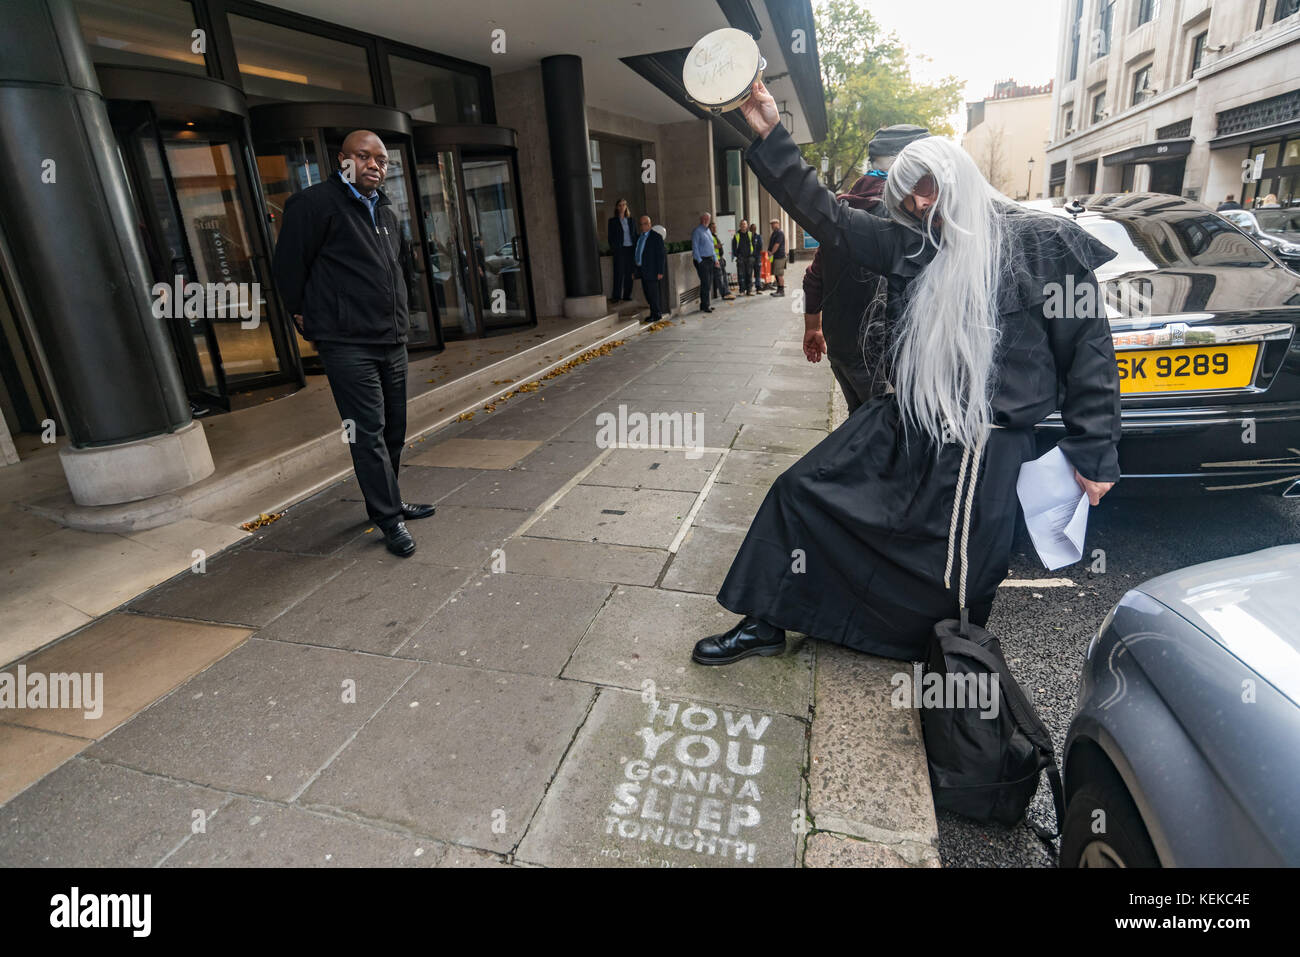 London, UK. October 21st 2017. Celebrating the 50th anniversary of the Yippee levitation of the Pentagon during - Stock Image